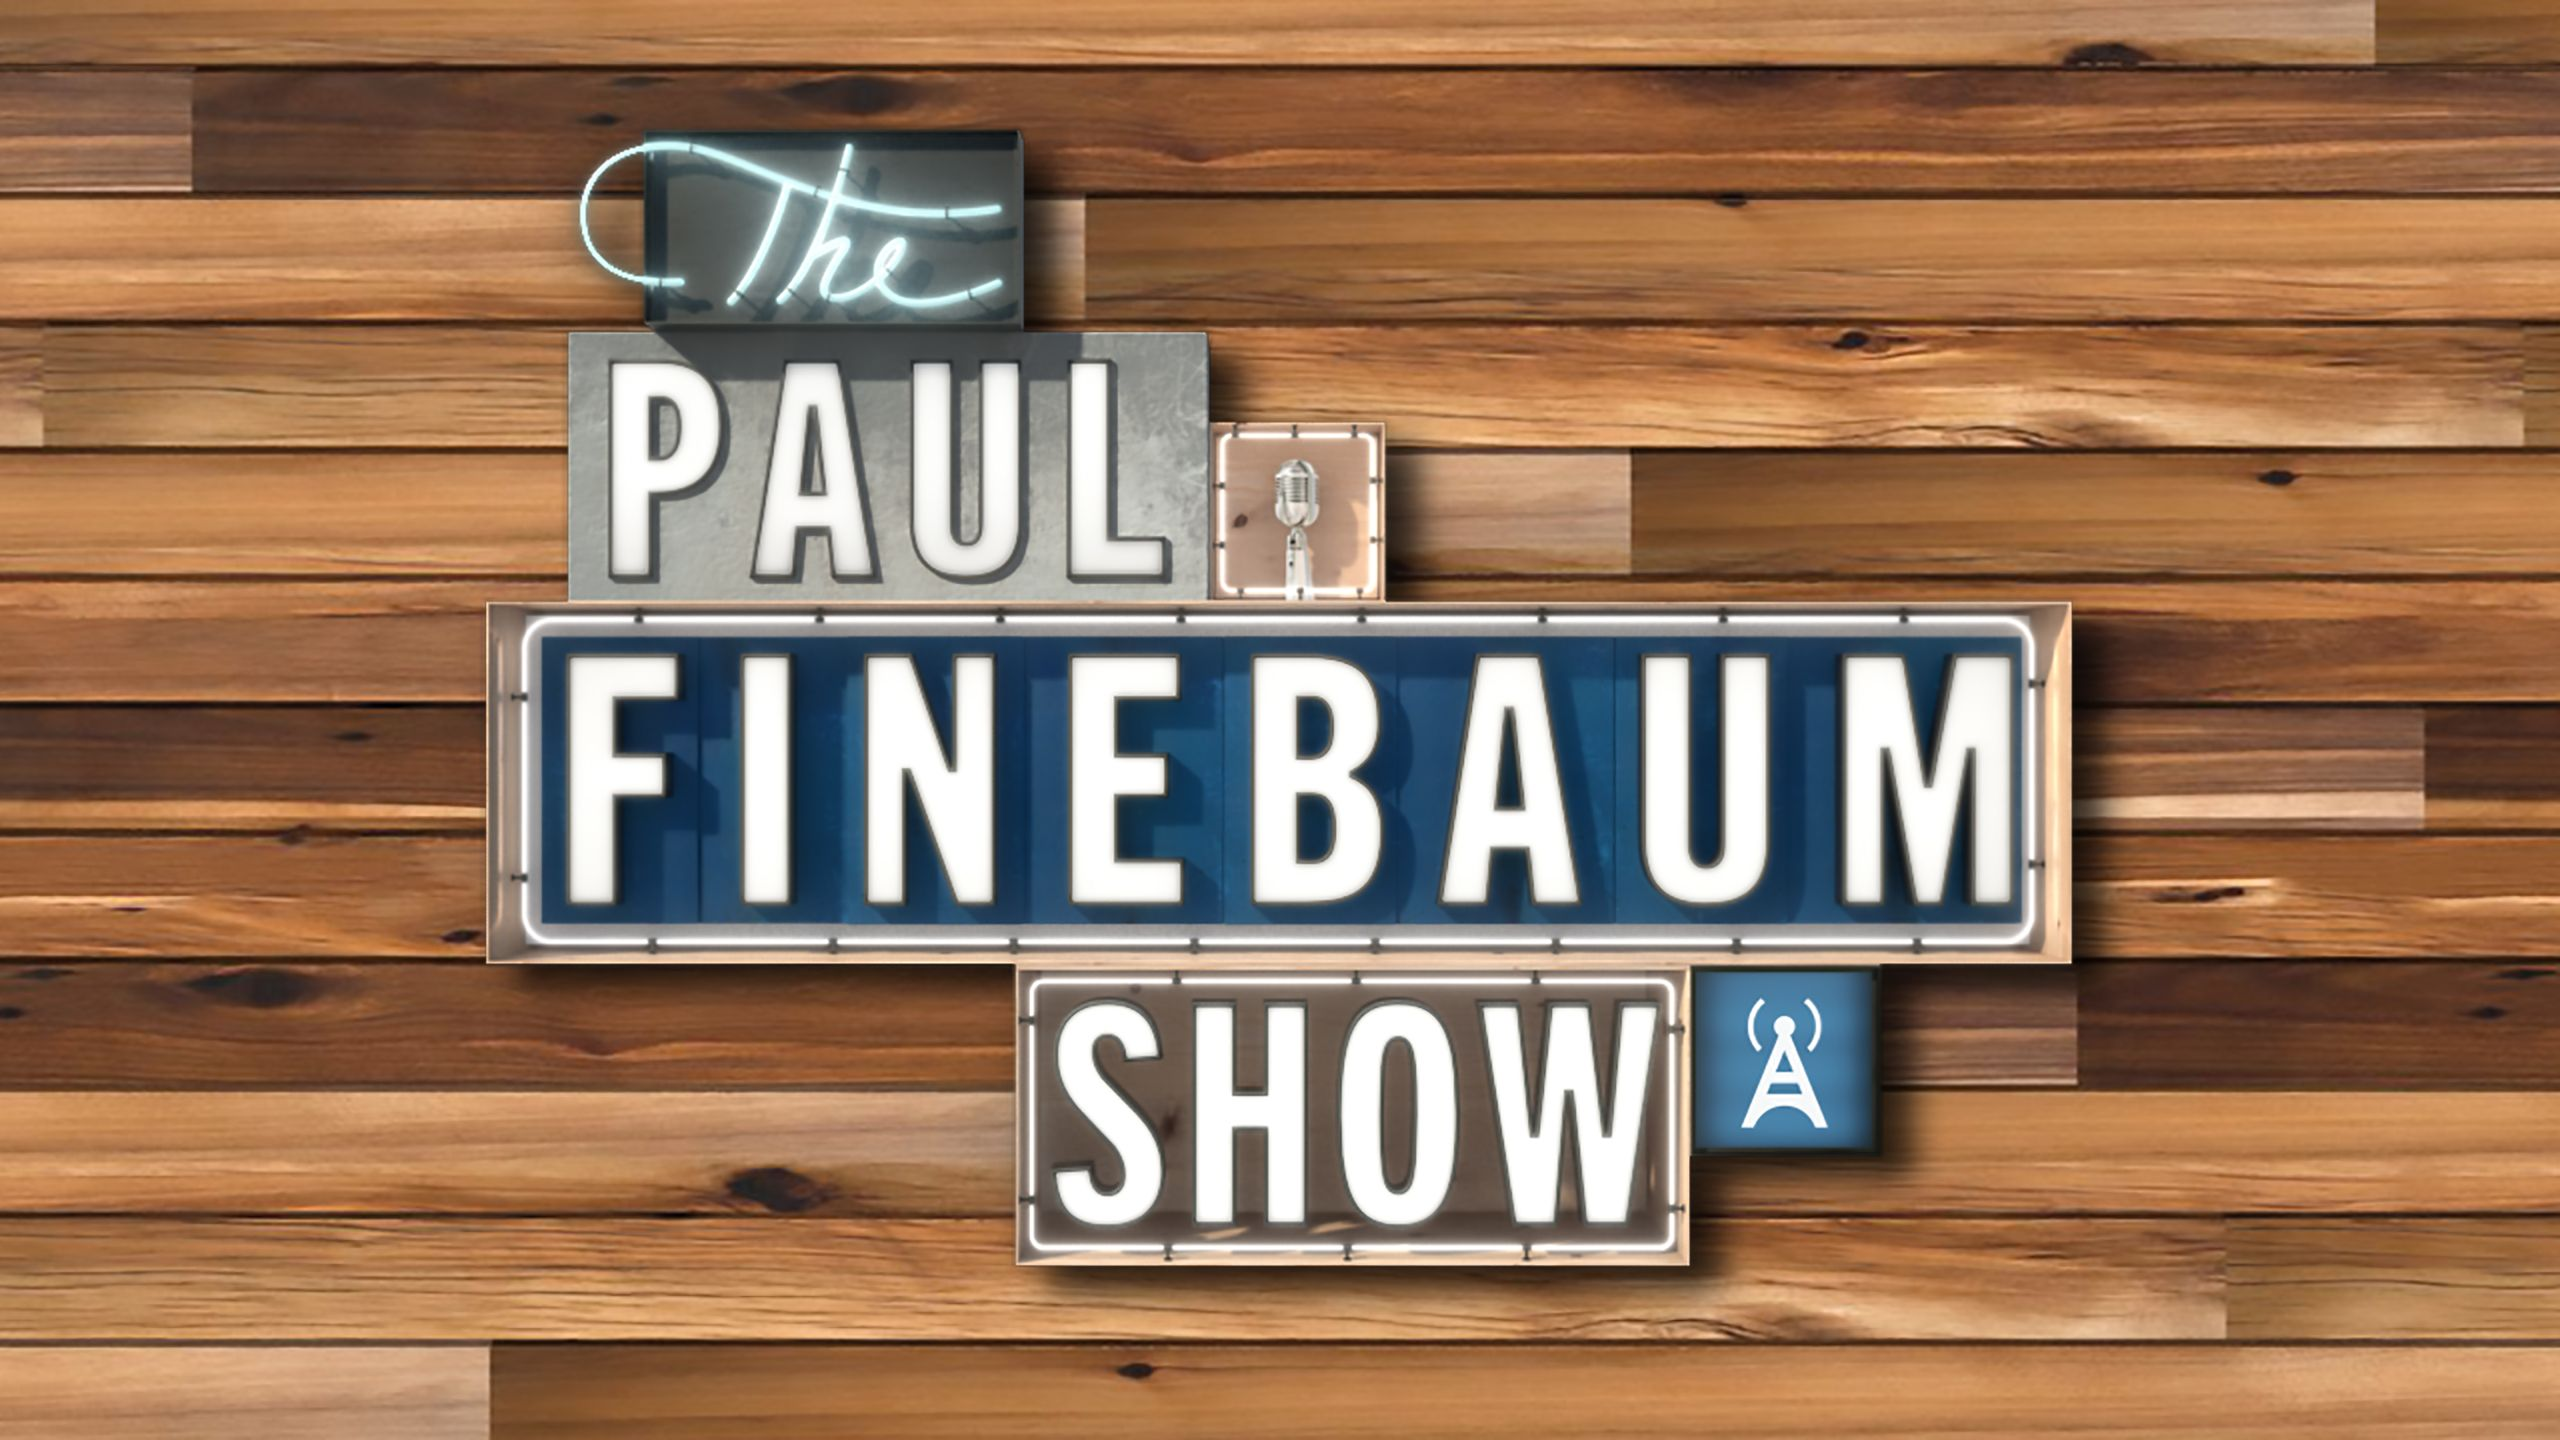 Wed, 3/21 - The Paul Finebaum Show